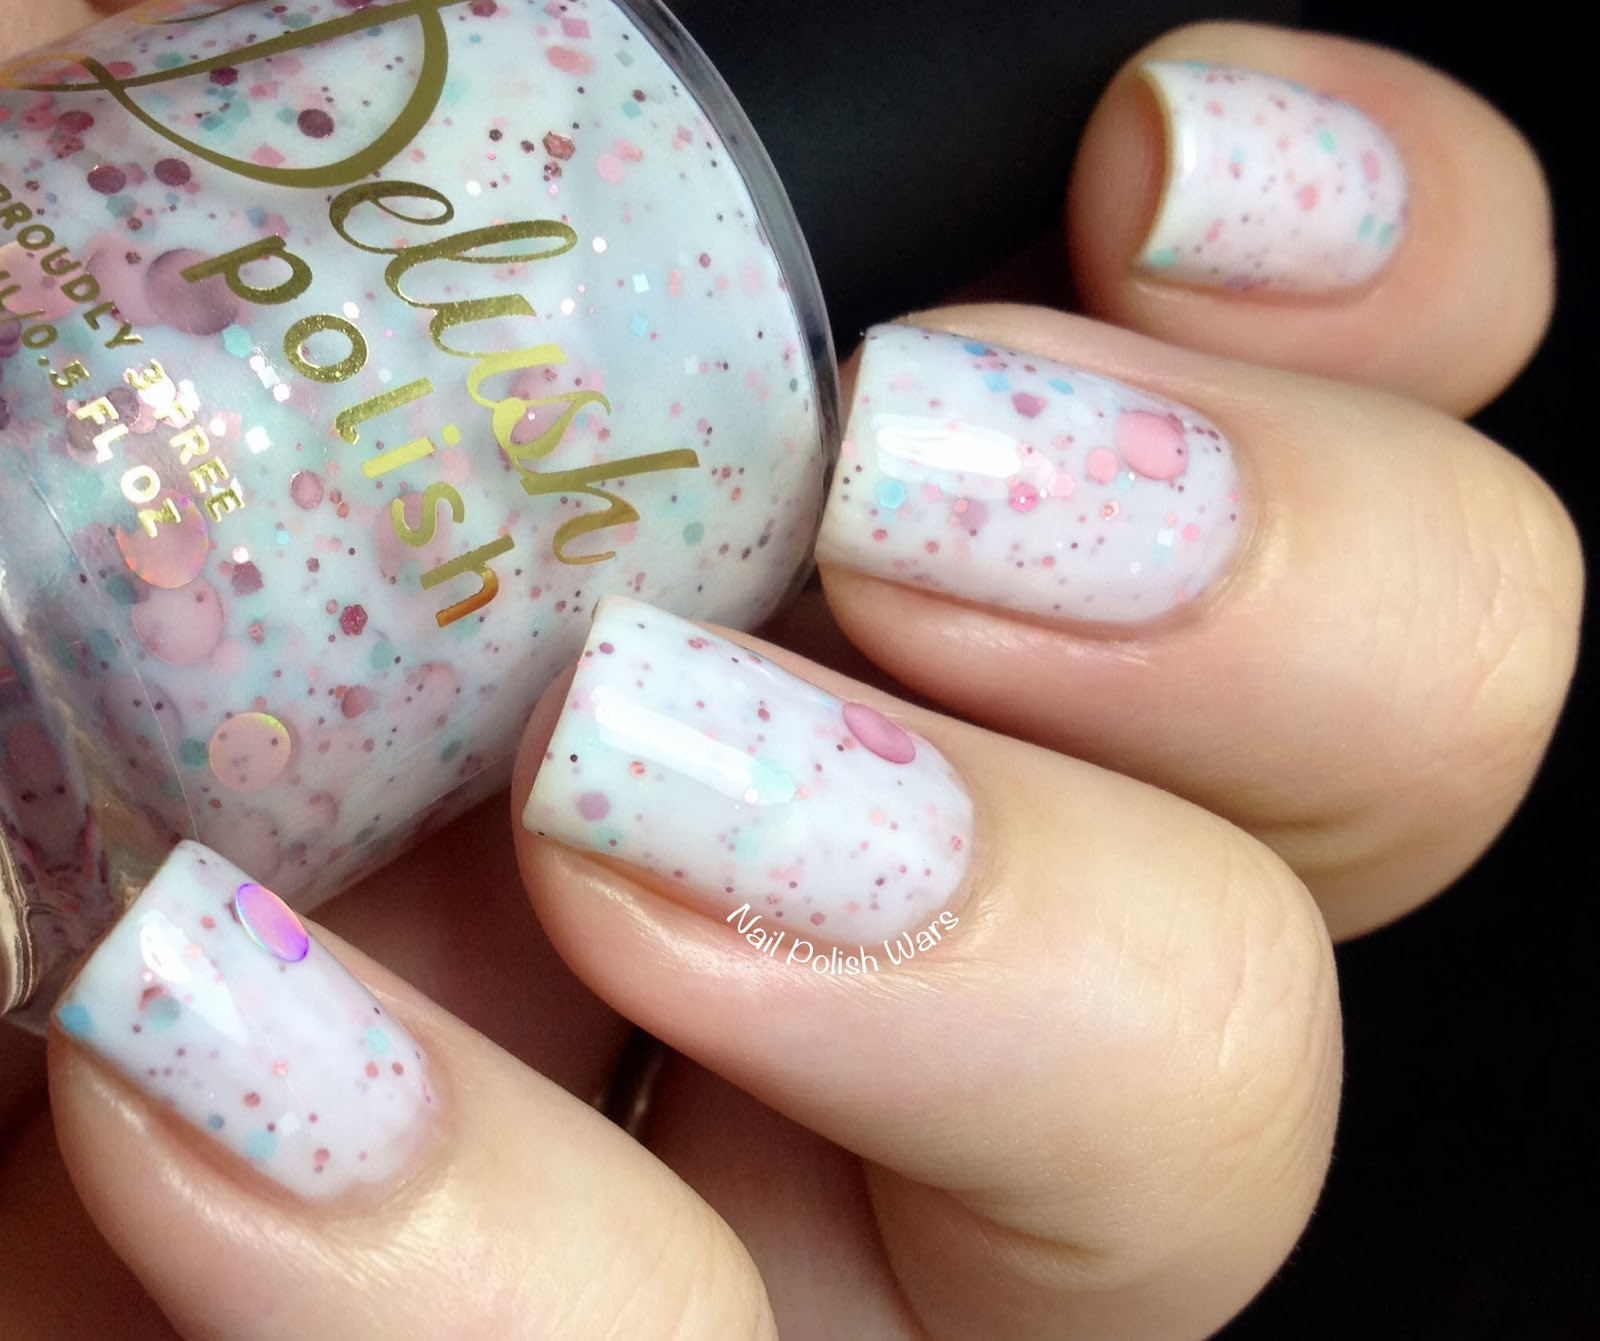 Delush Polish Valentine's Day 2014